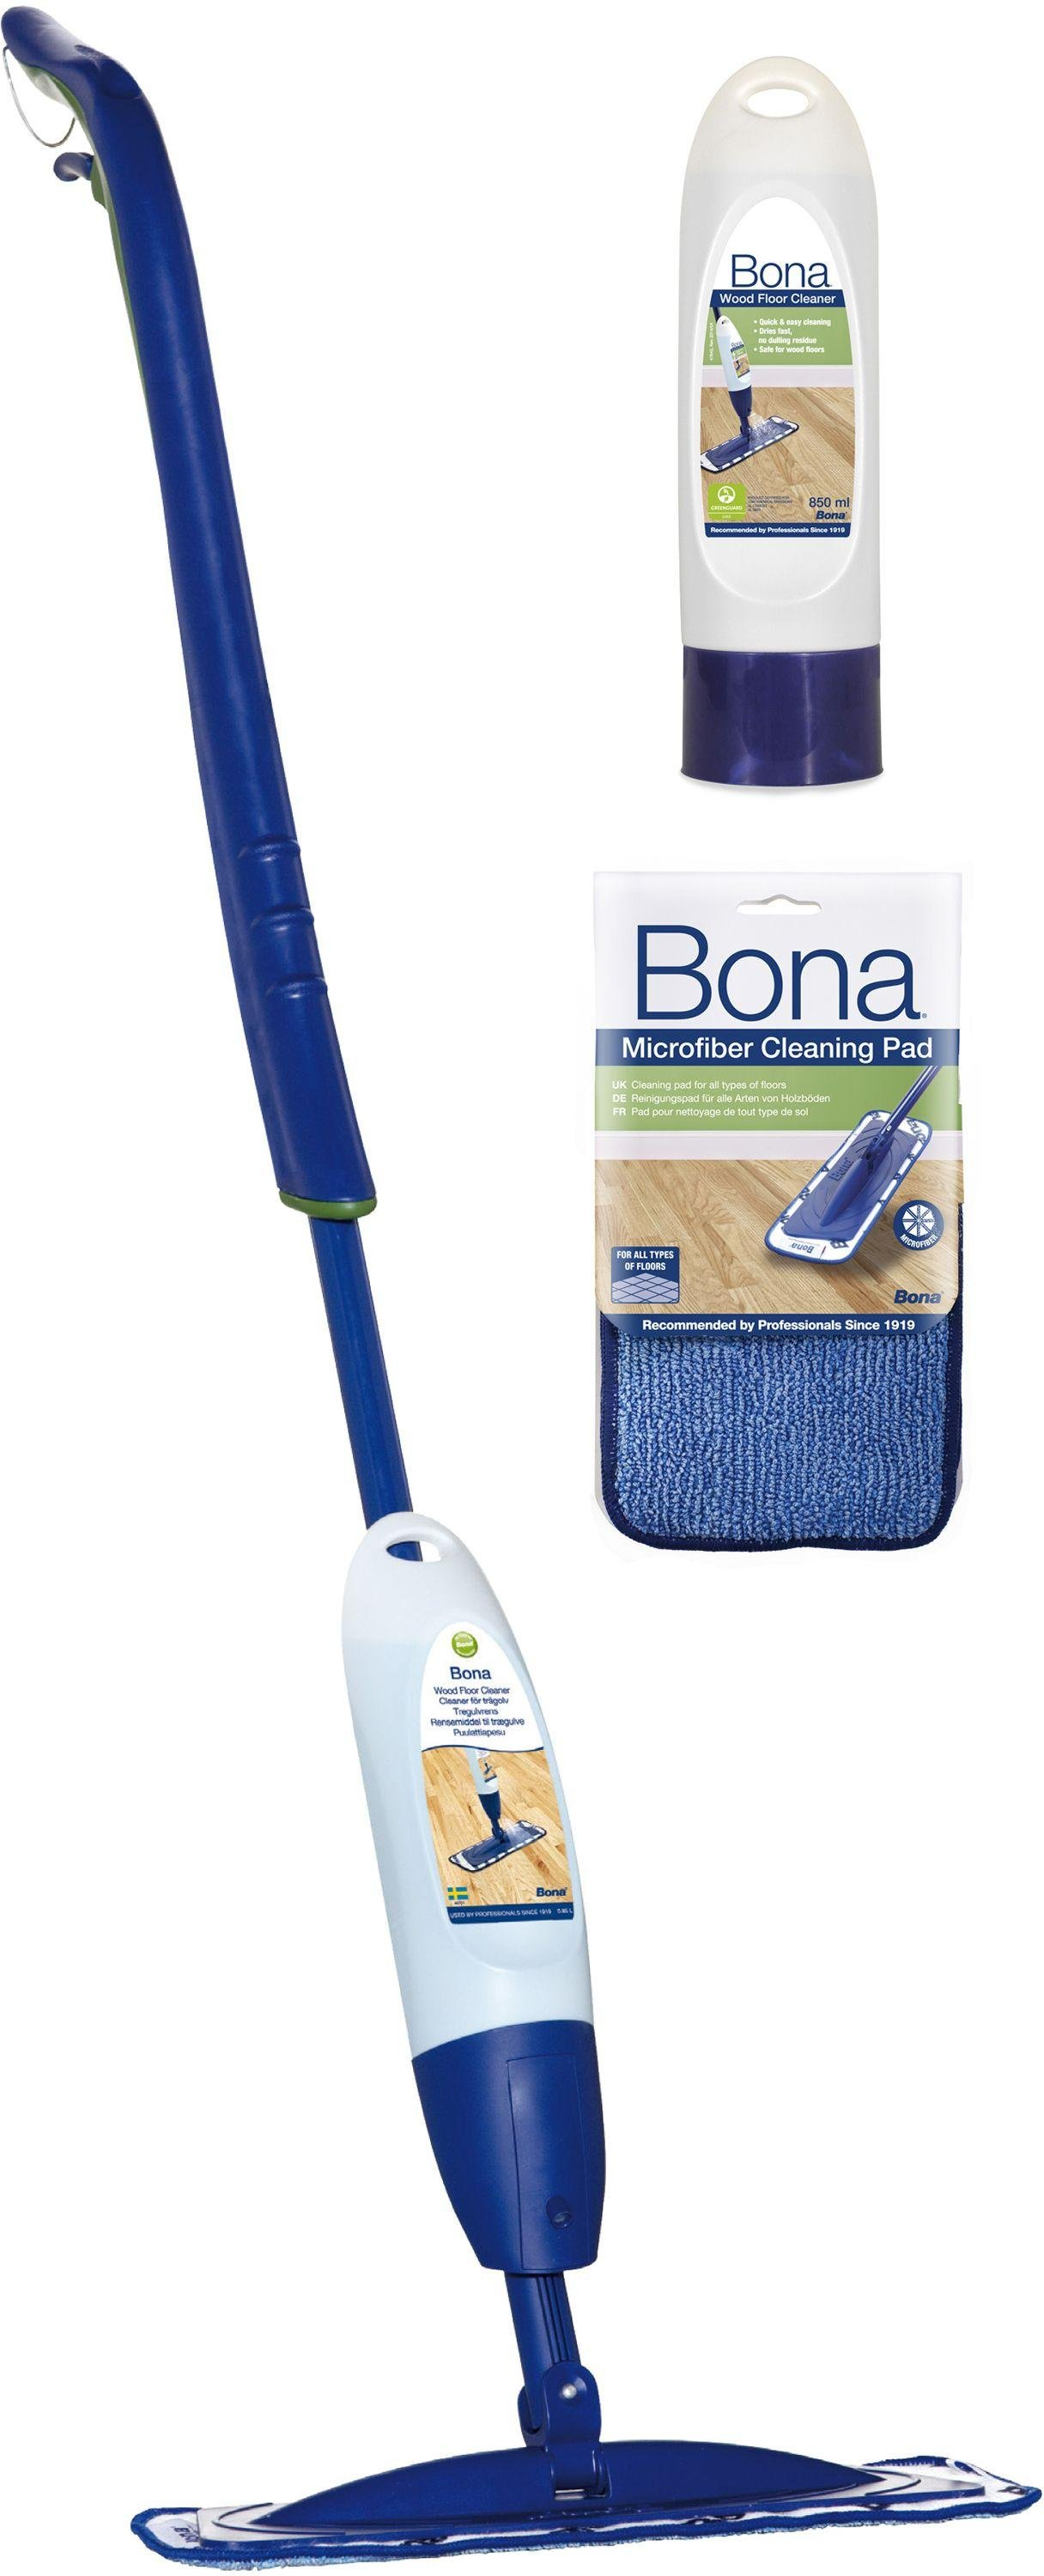 Bona Spray Mop Kit for Wood Floors.